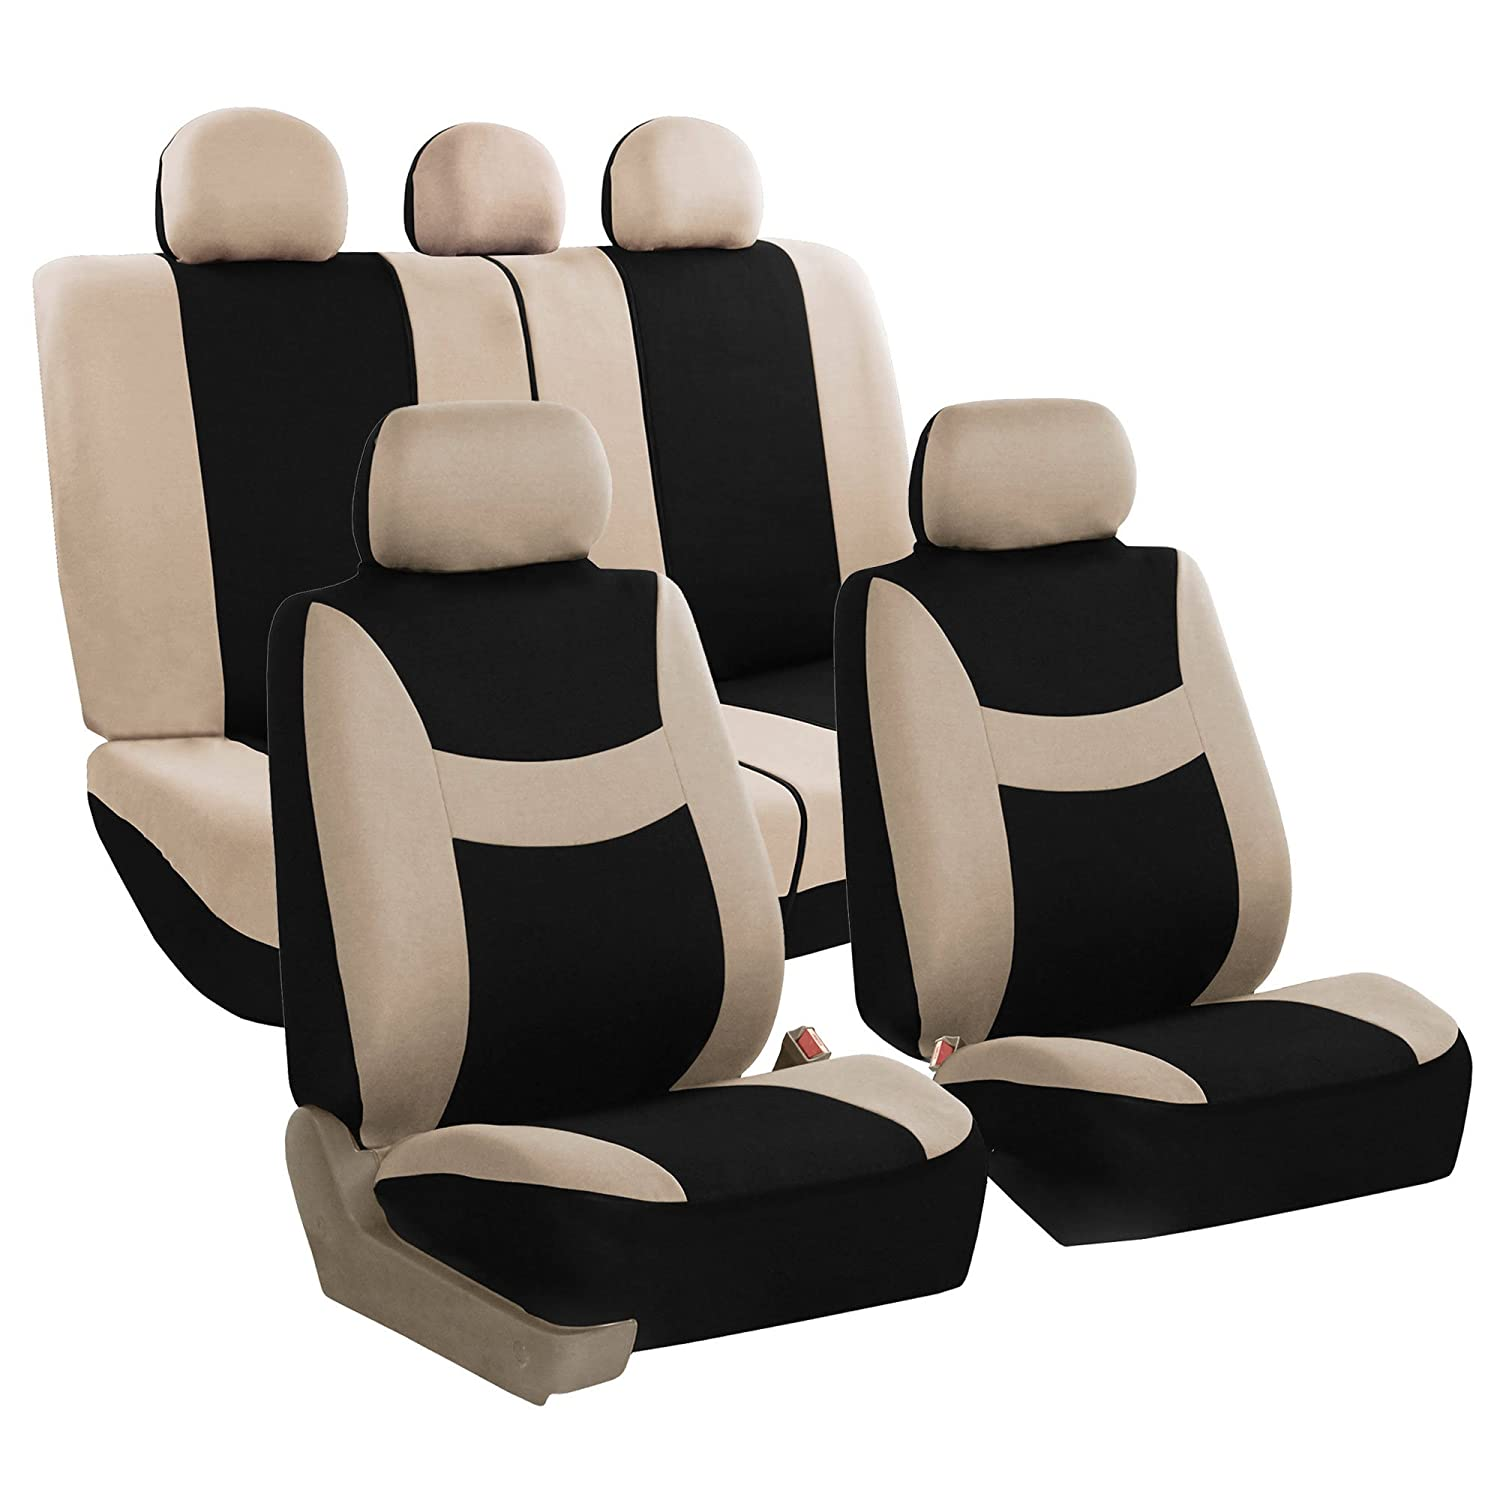 FH GROUP FB030115 SEAT Light Breezy Beige Black Cloth Seat Cover